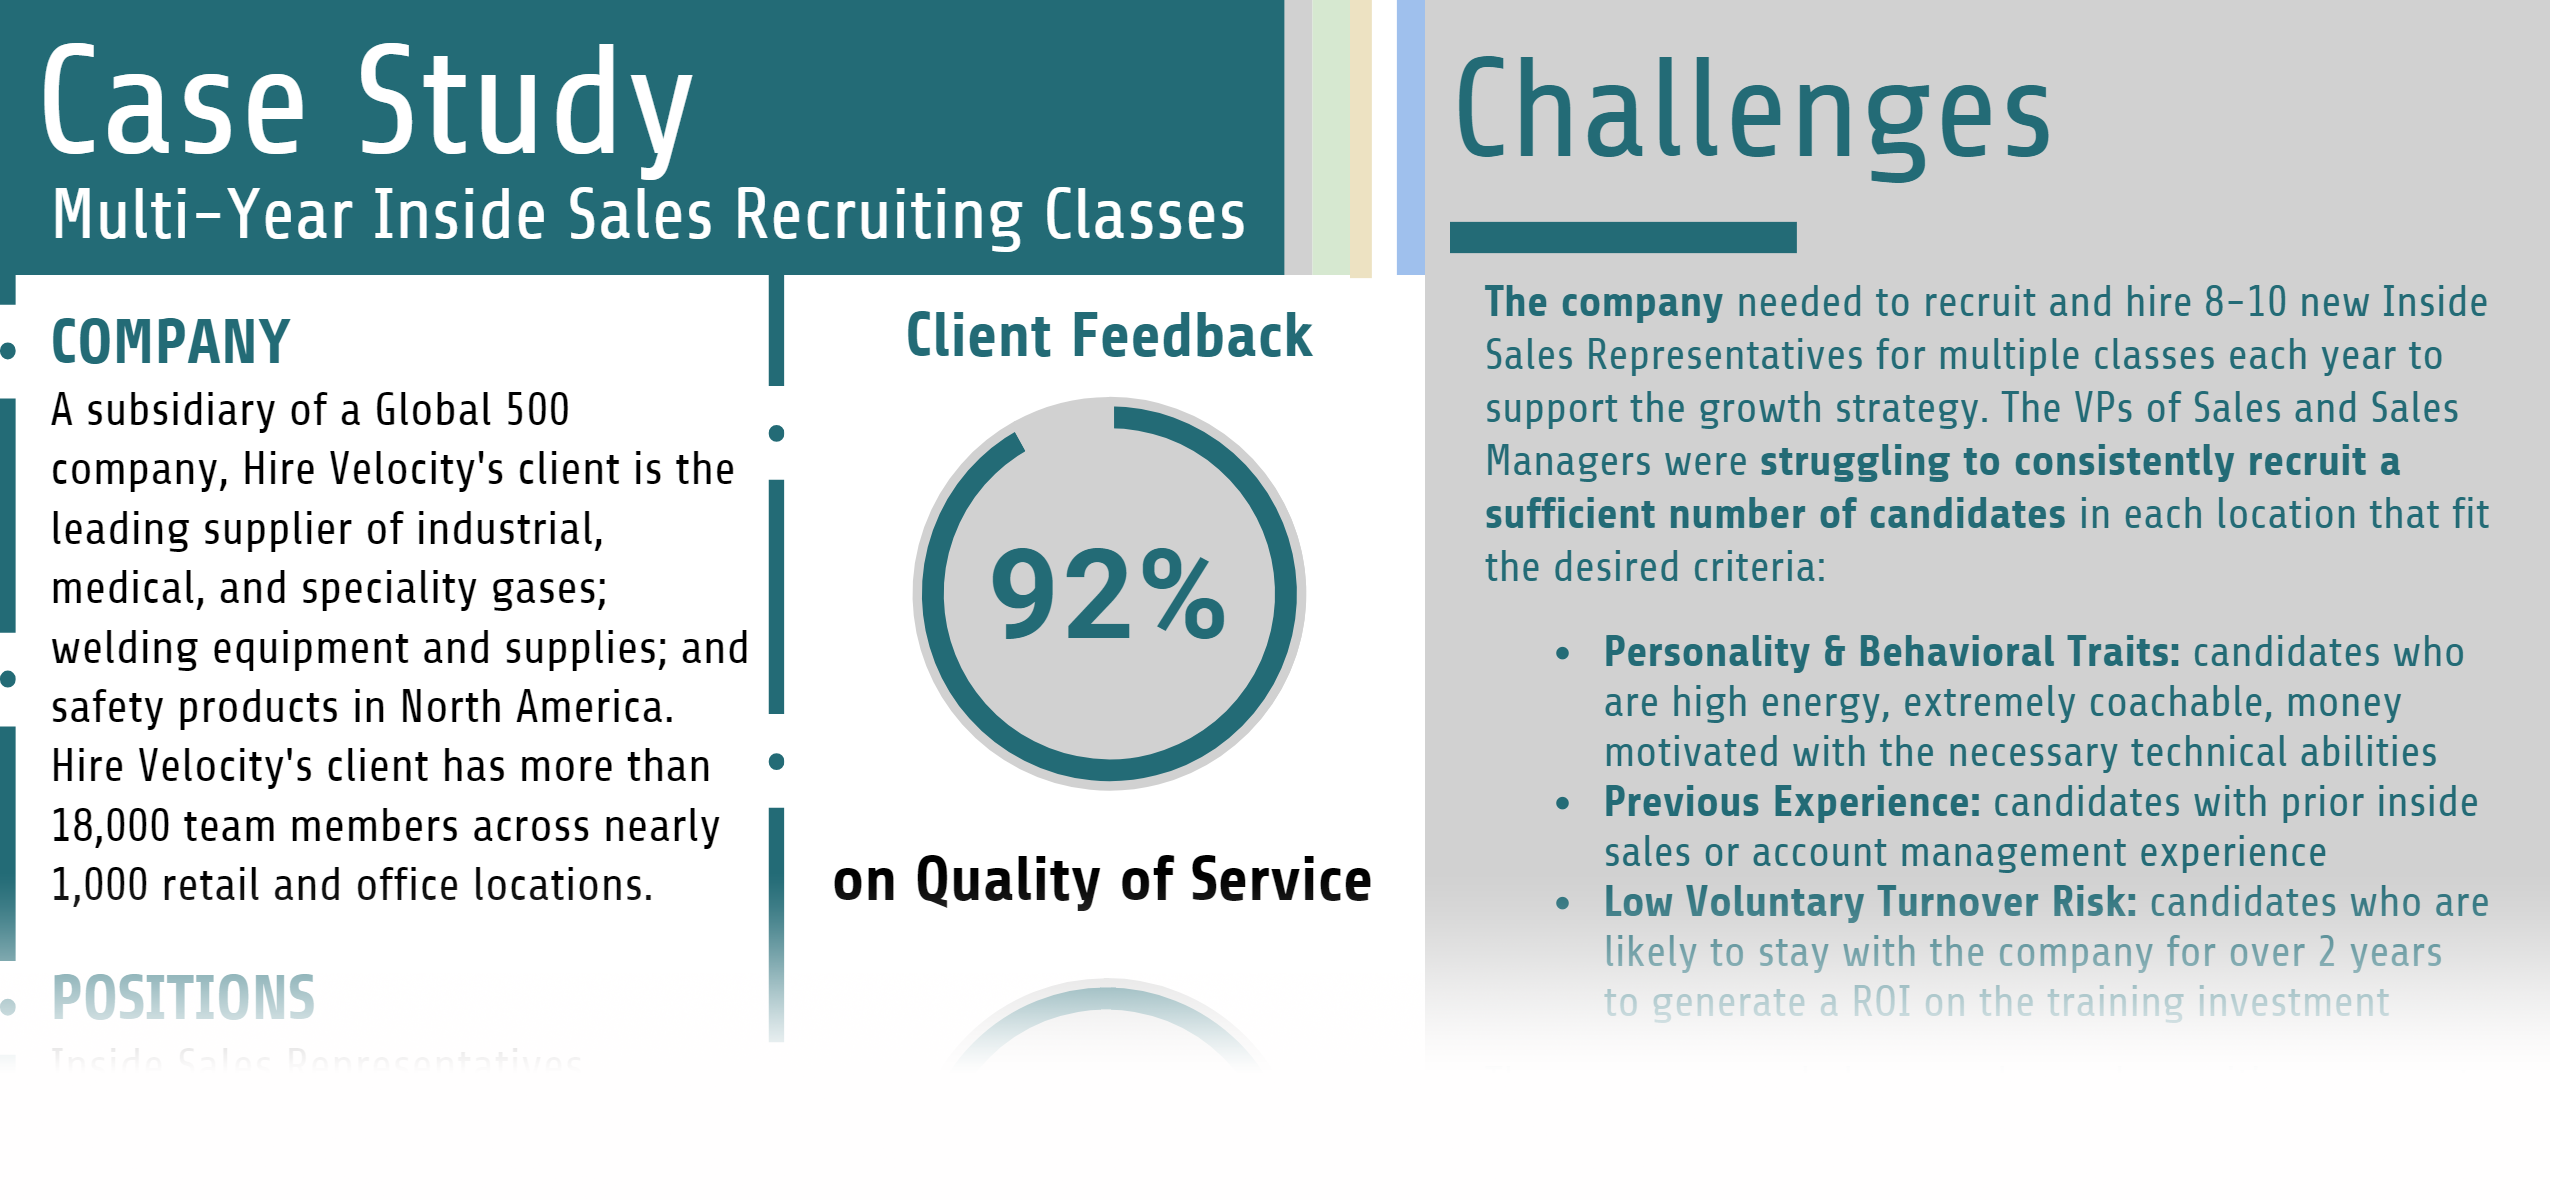 Multi-Year Inside Sales Recruiting Case Study